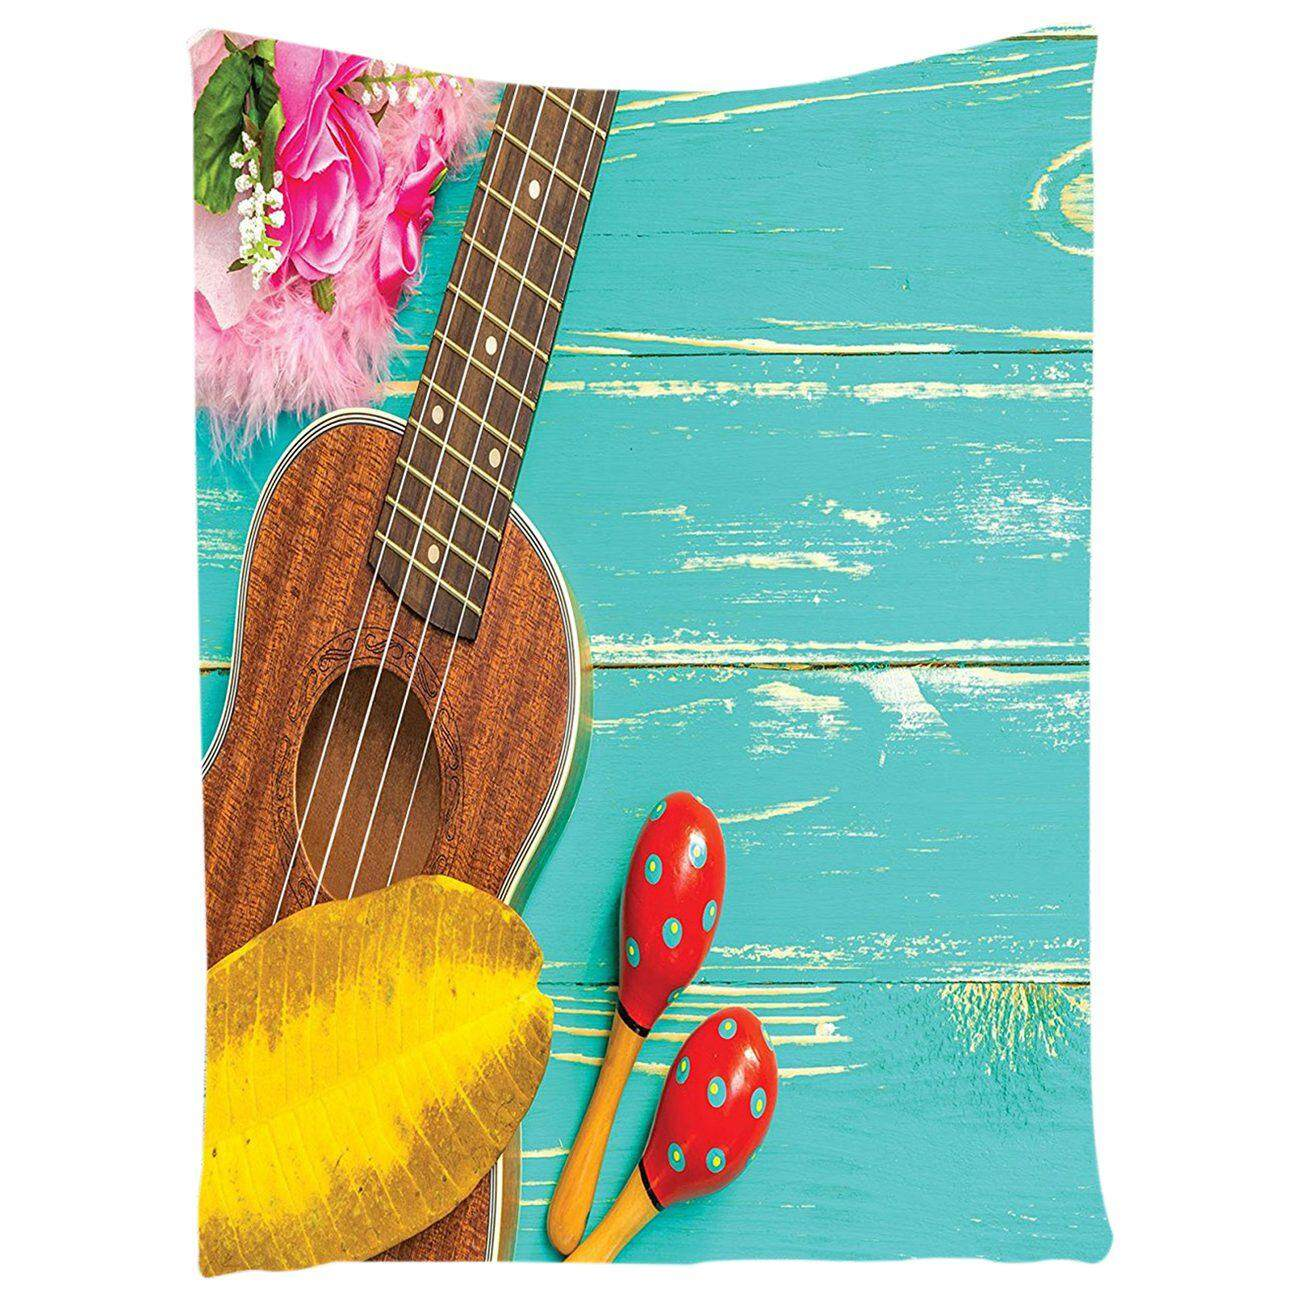 Music Decor Tapestry Ukulele With Hawaii Style Background Wooden Classical Vacation Stylized, Bedroom Living Room Dorm Decor, 100*150cm - intl